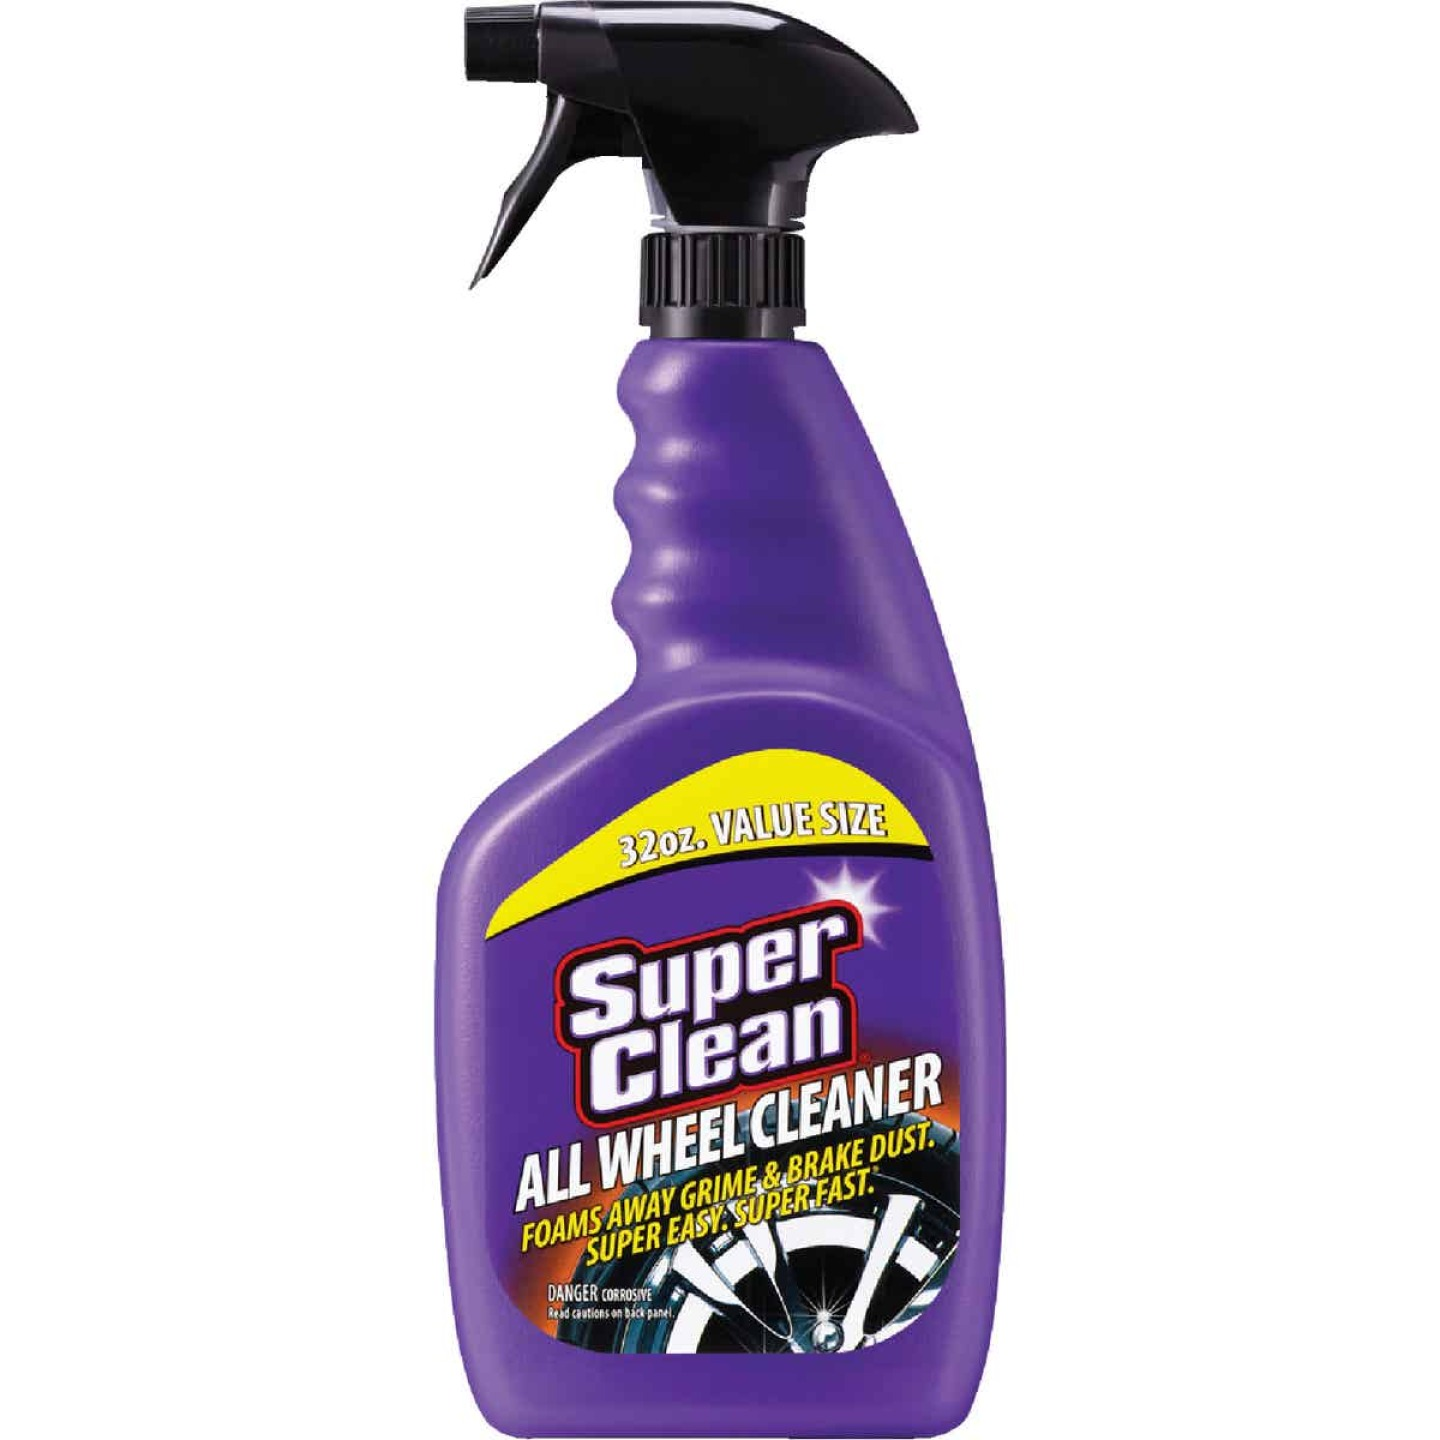 Superclean 32 oz Trigger Spray Wheel Cleaner Image 1